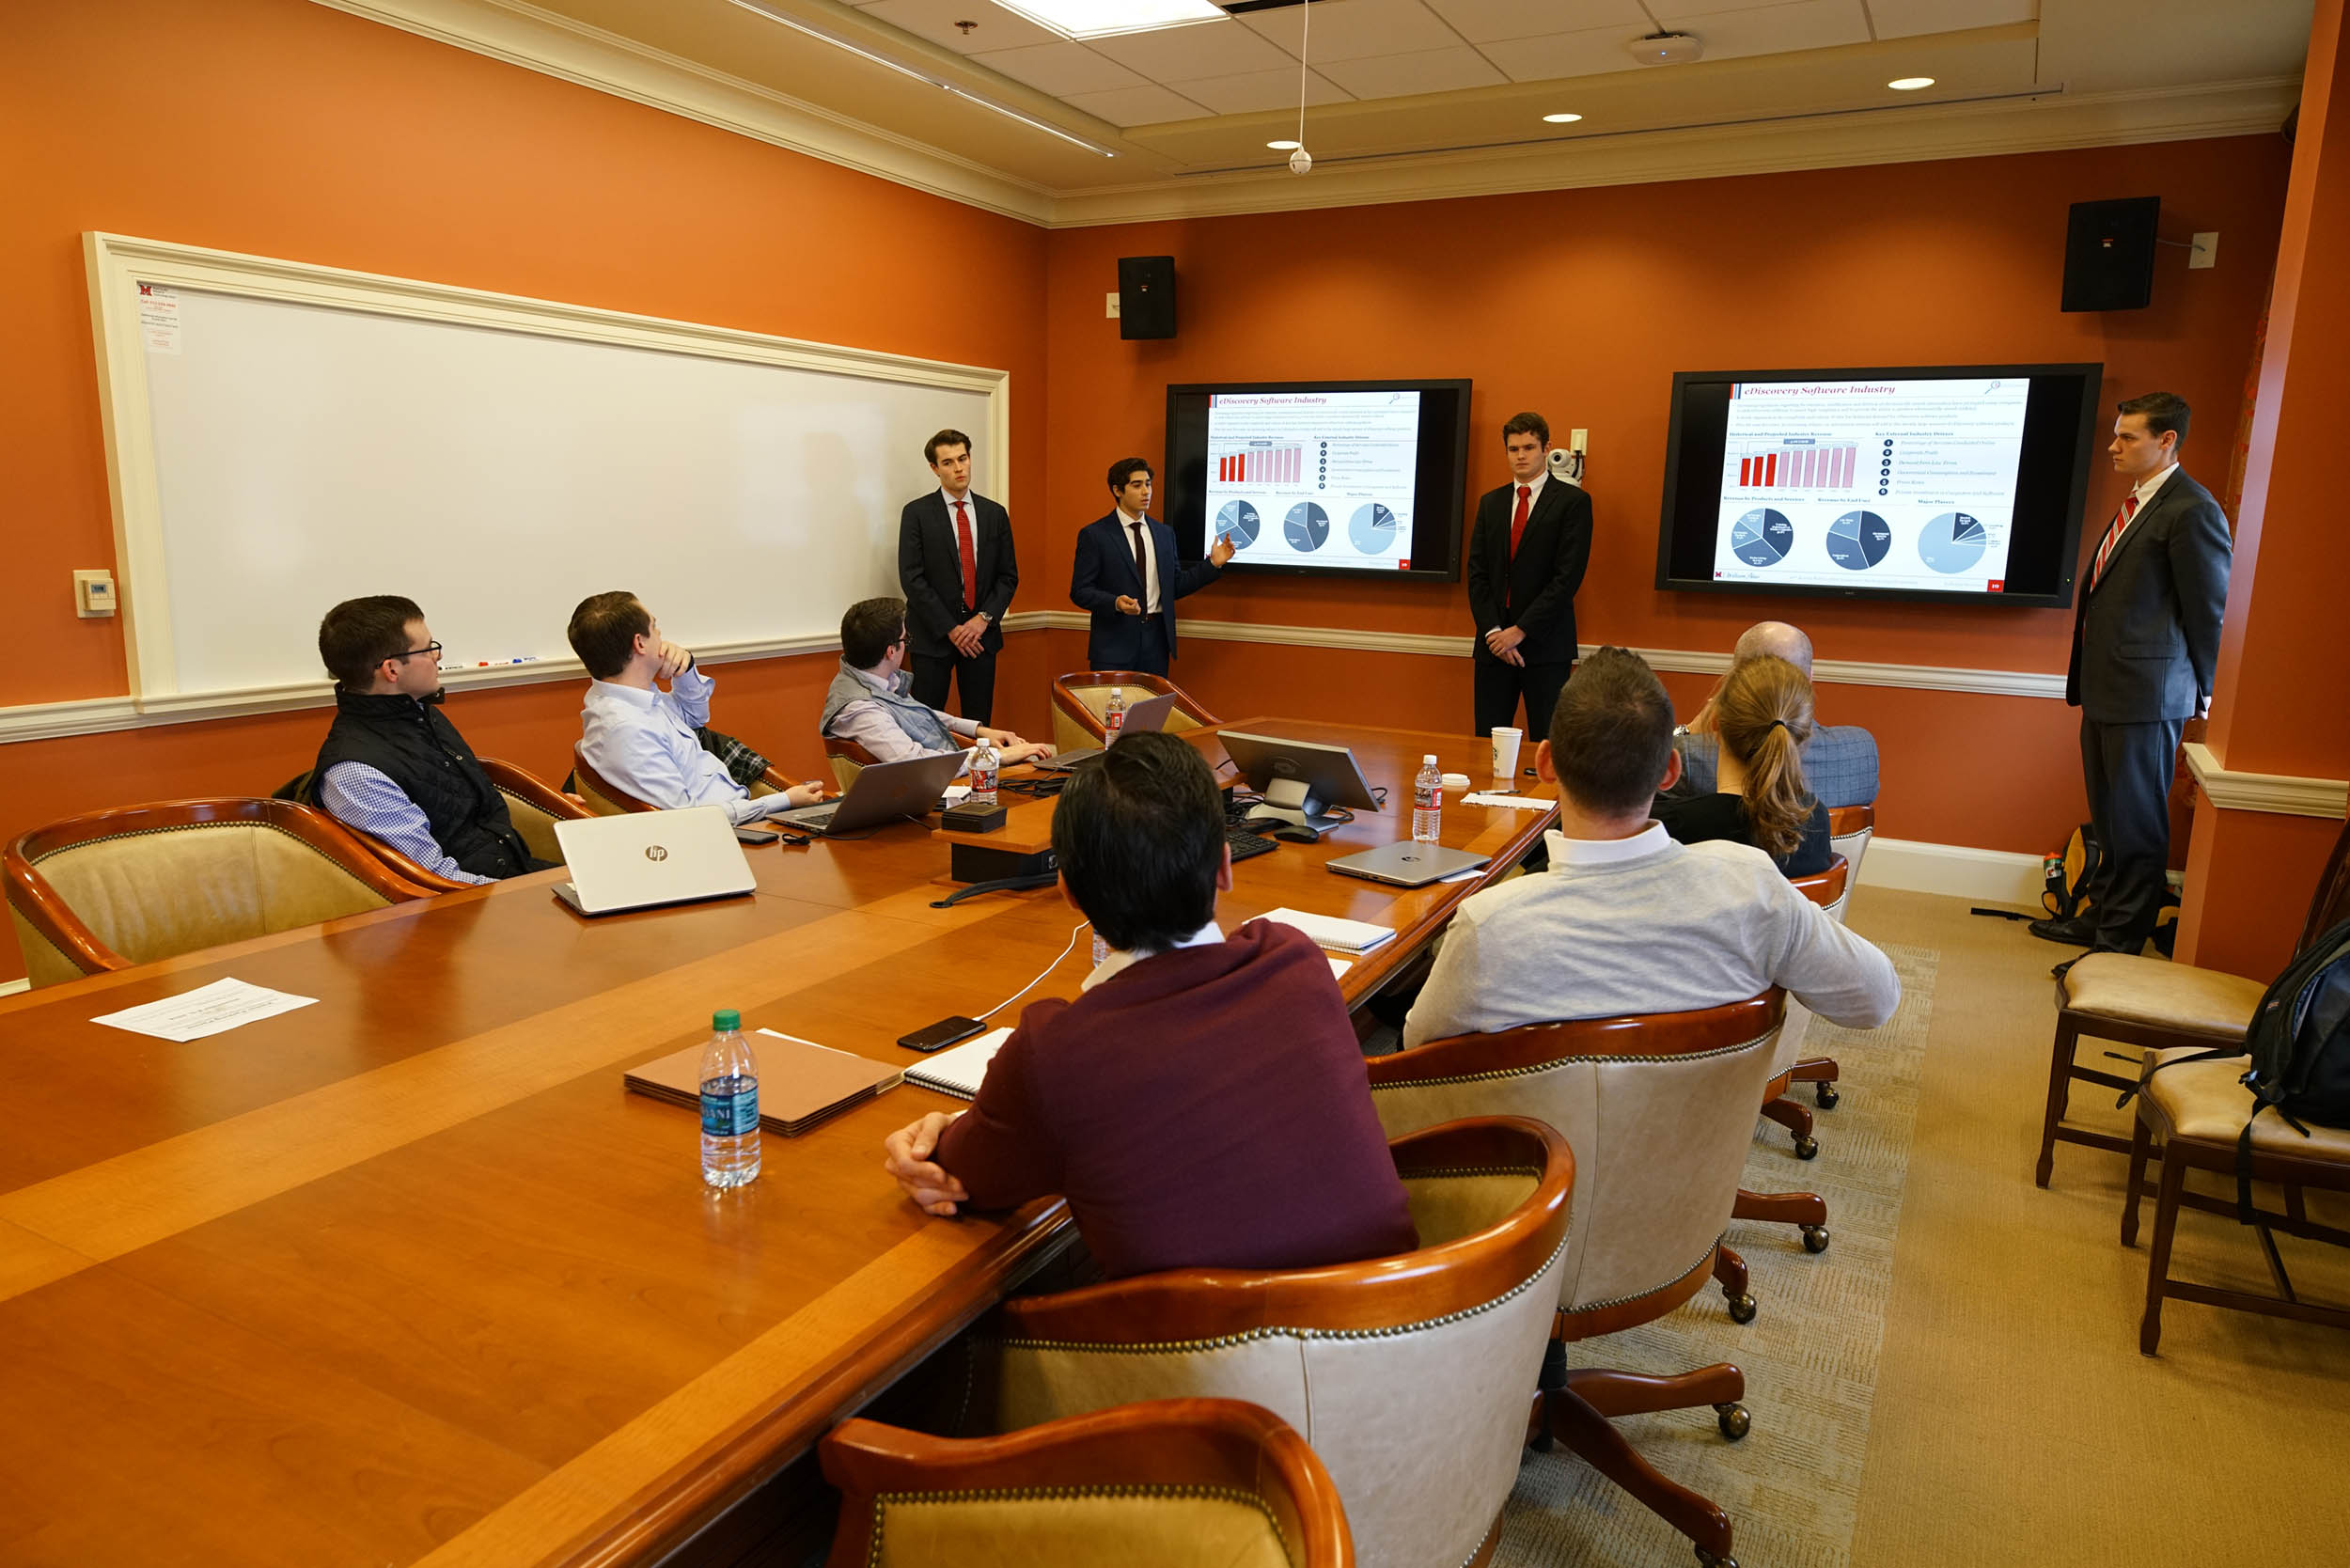 Students make final presentation to William Blair executives